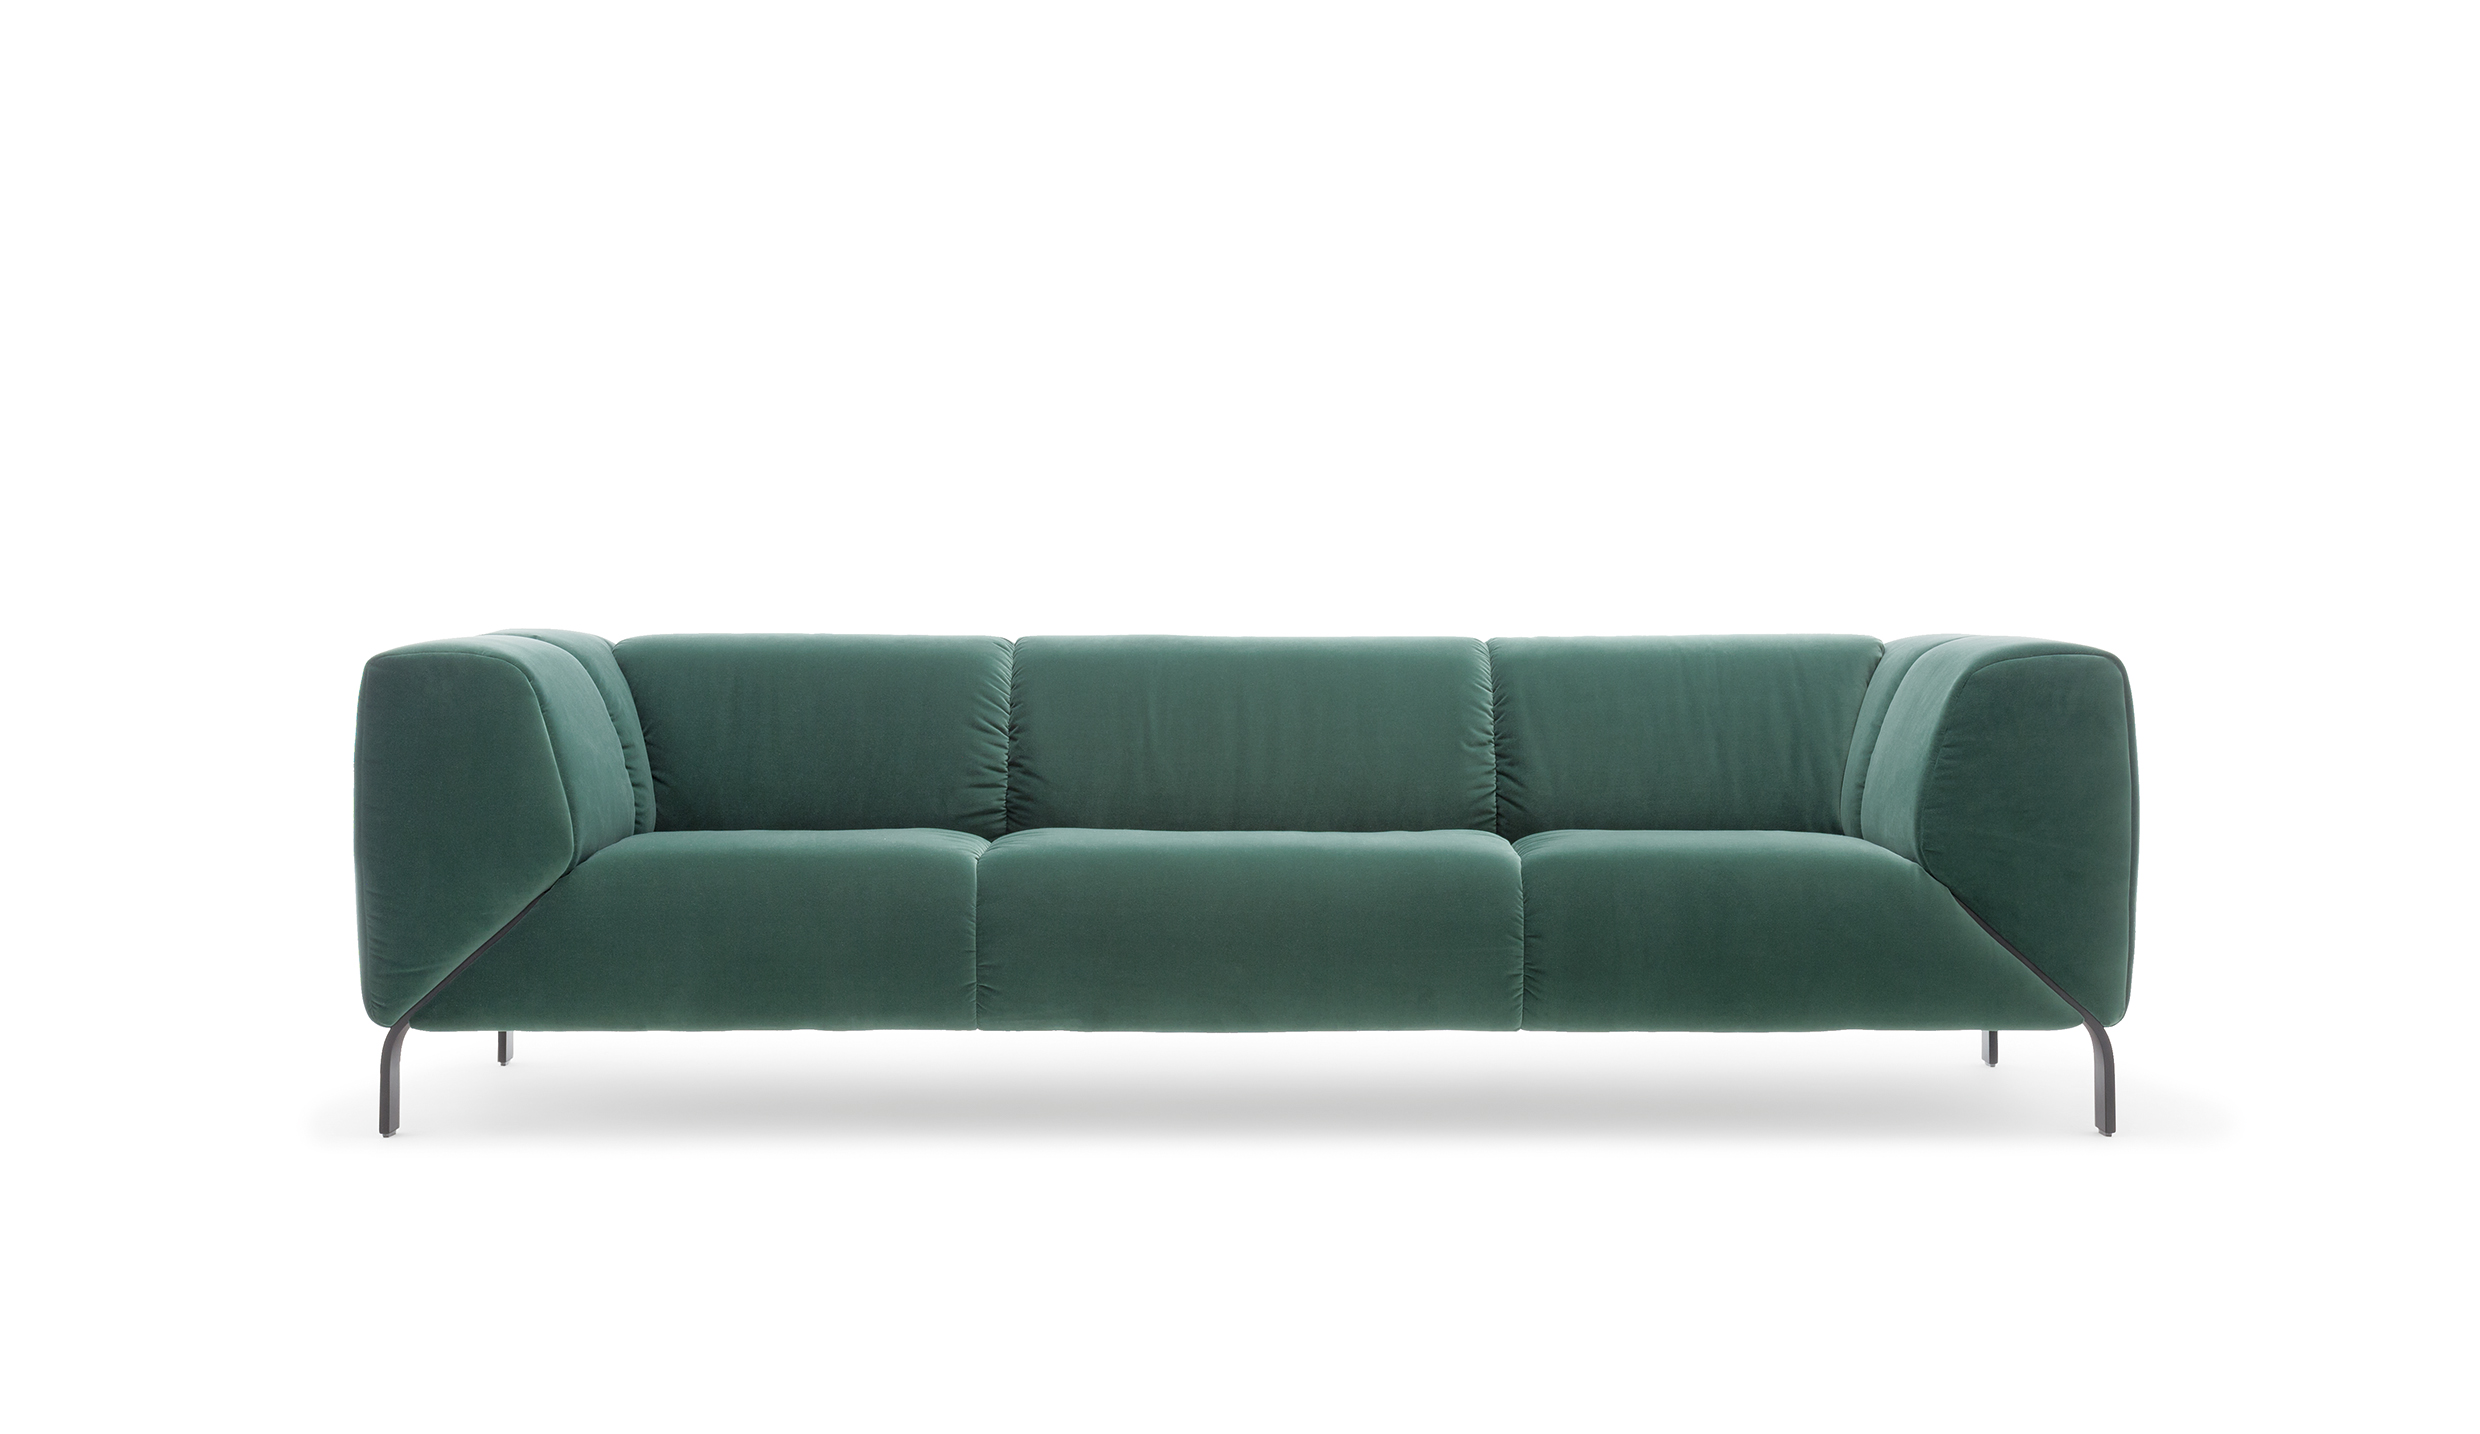 Rolf Benz Sofa 6600 Rolf Benz 323 Oud And Nieuw Home Comfort Press